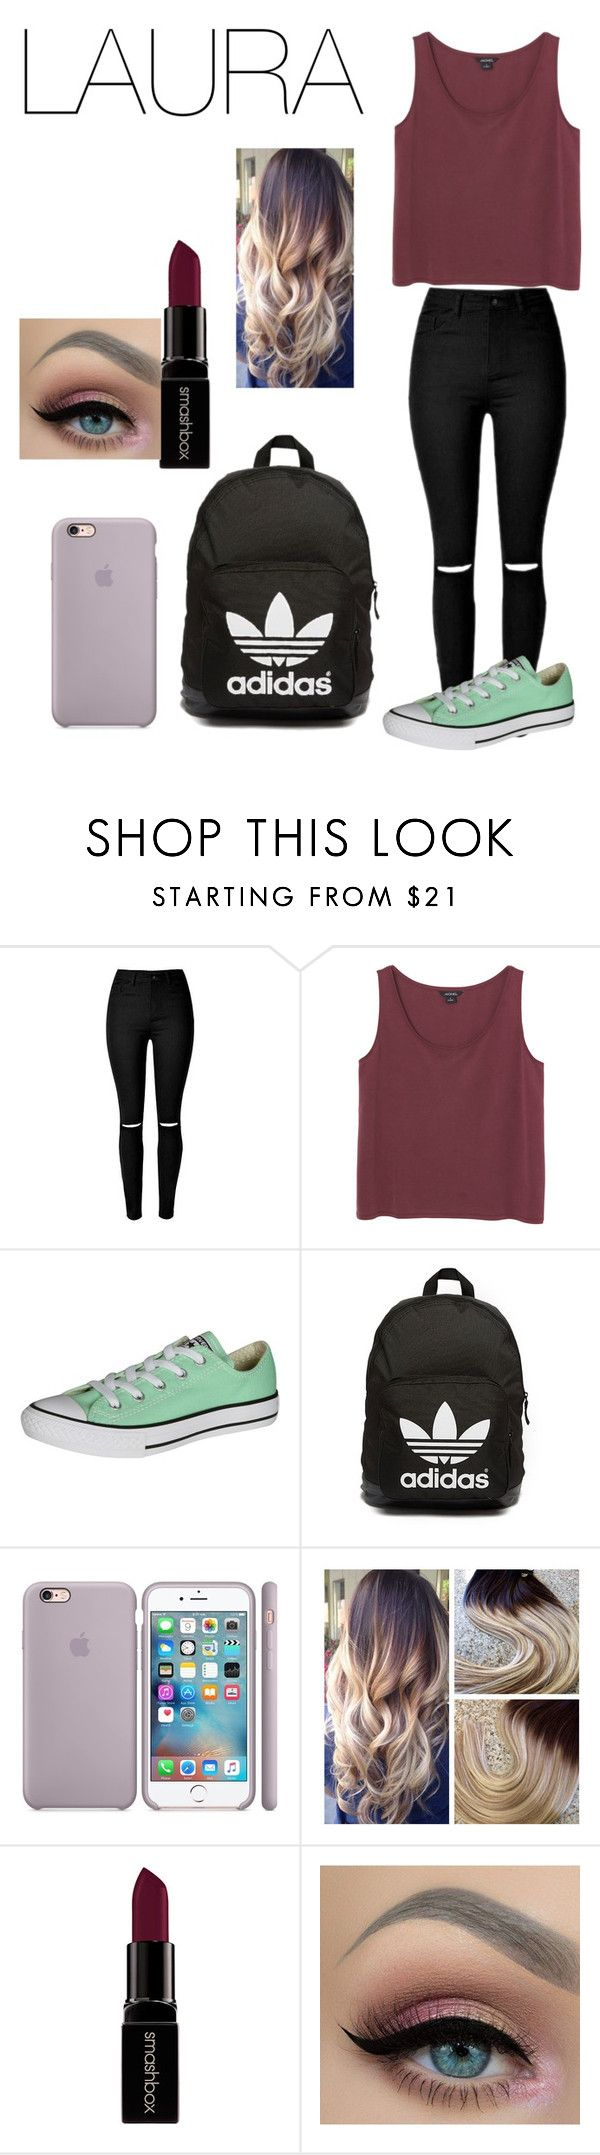 """voor jou"" by carmen-ederveen ❤ liked on Polyvore featuring Monki, Converse, adidas Originals and Smashbox"